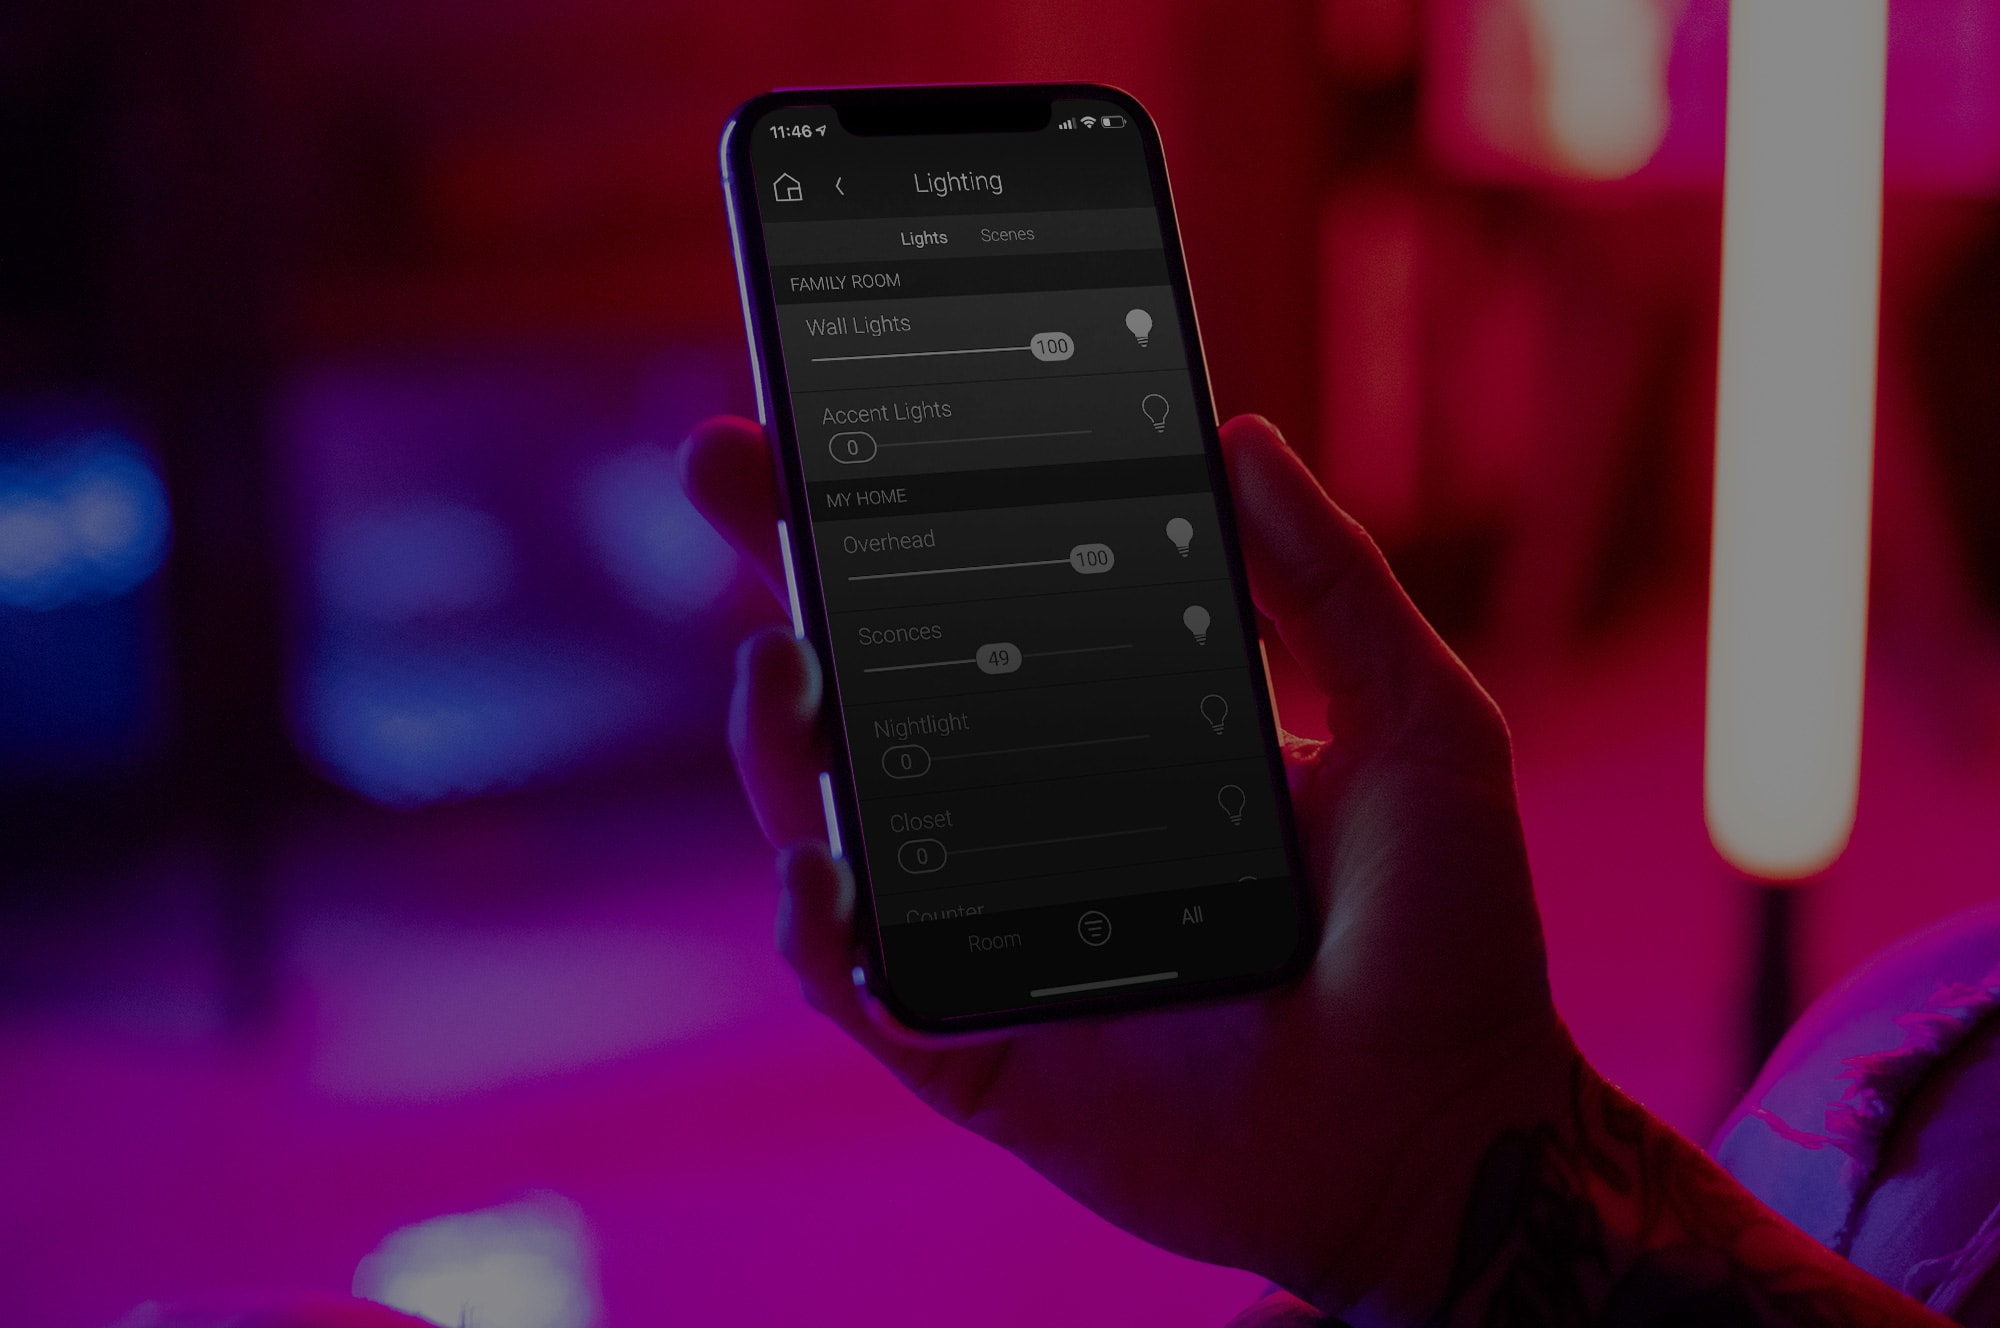 control automation system from your phone